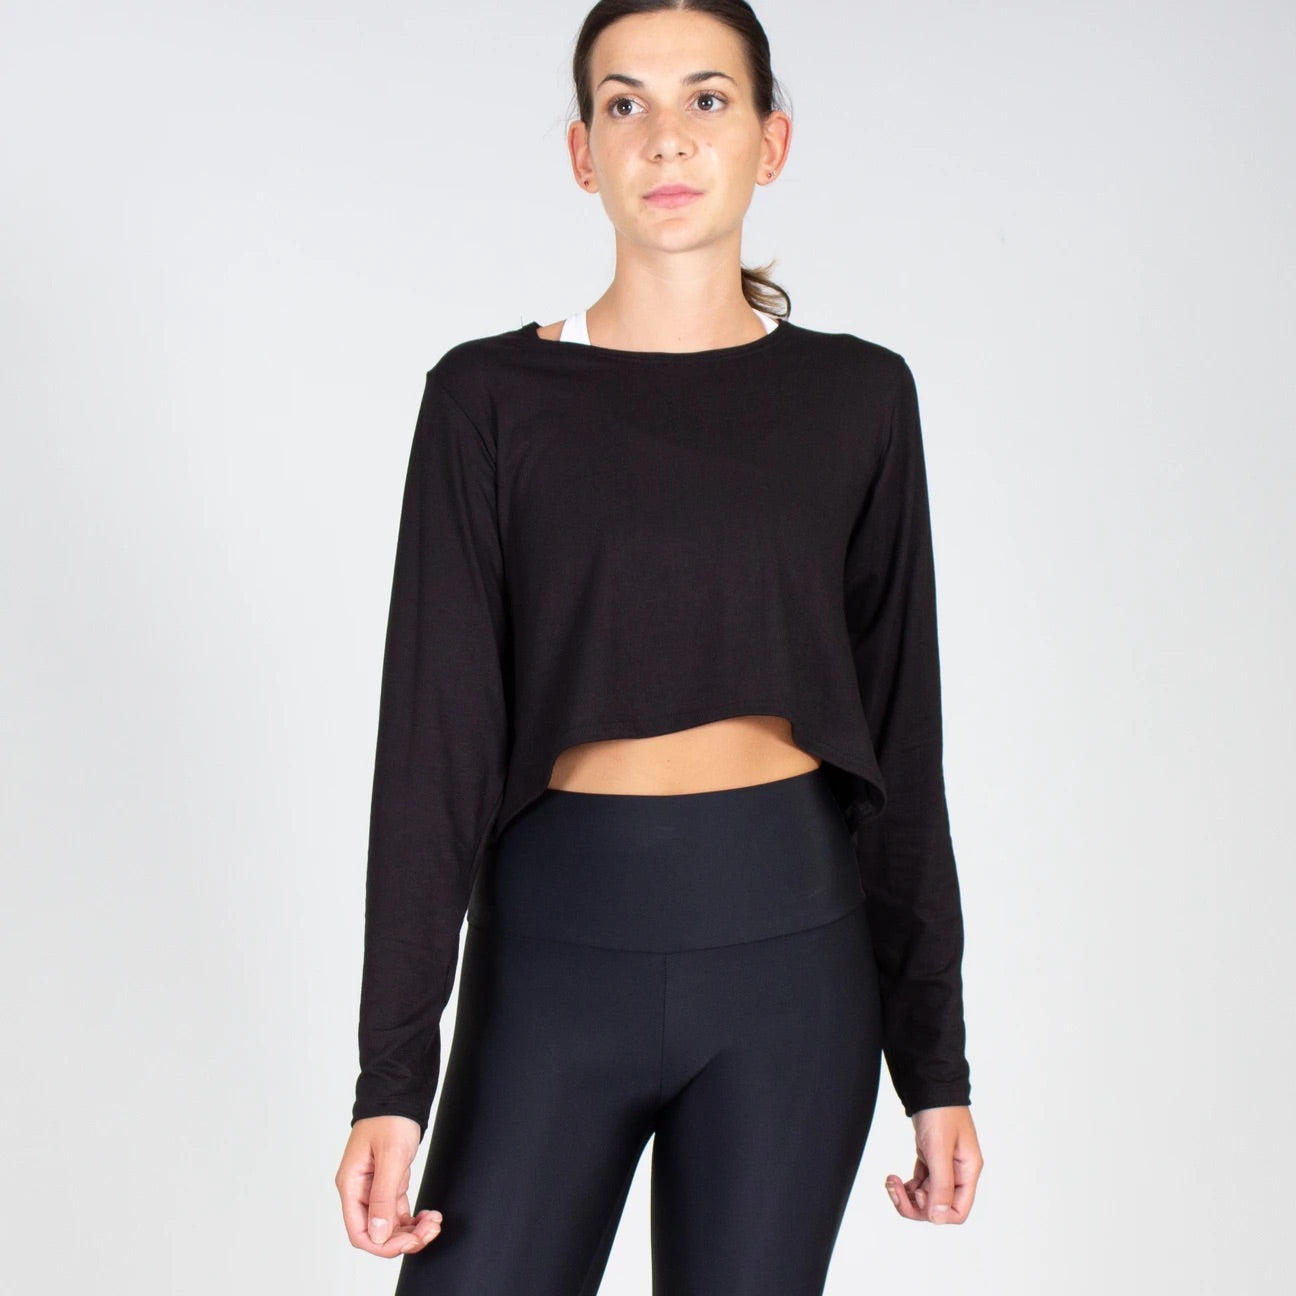 BELLA LONG SLV CROPPED